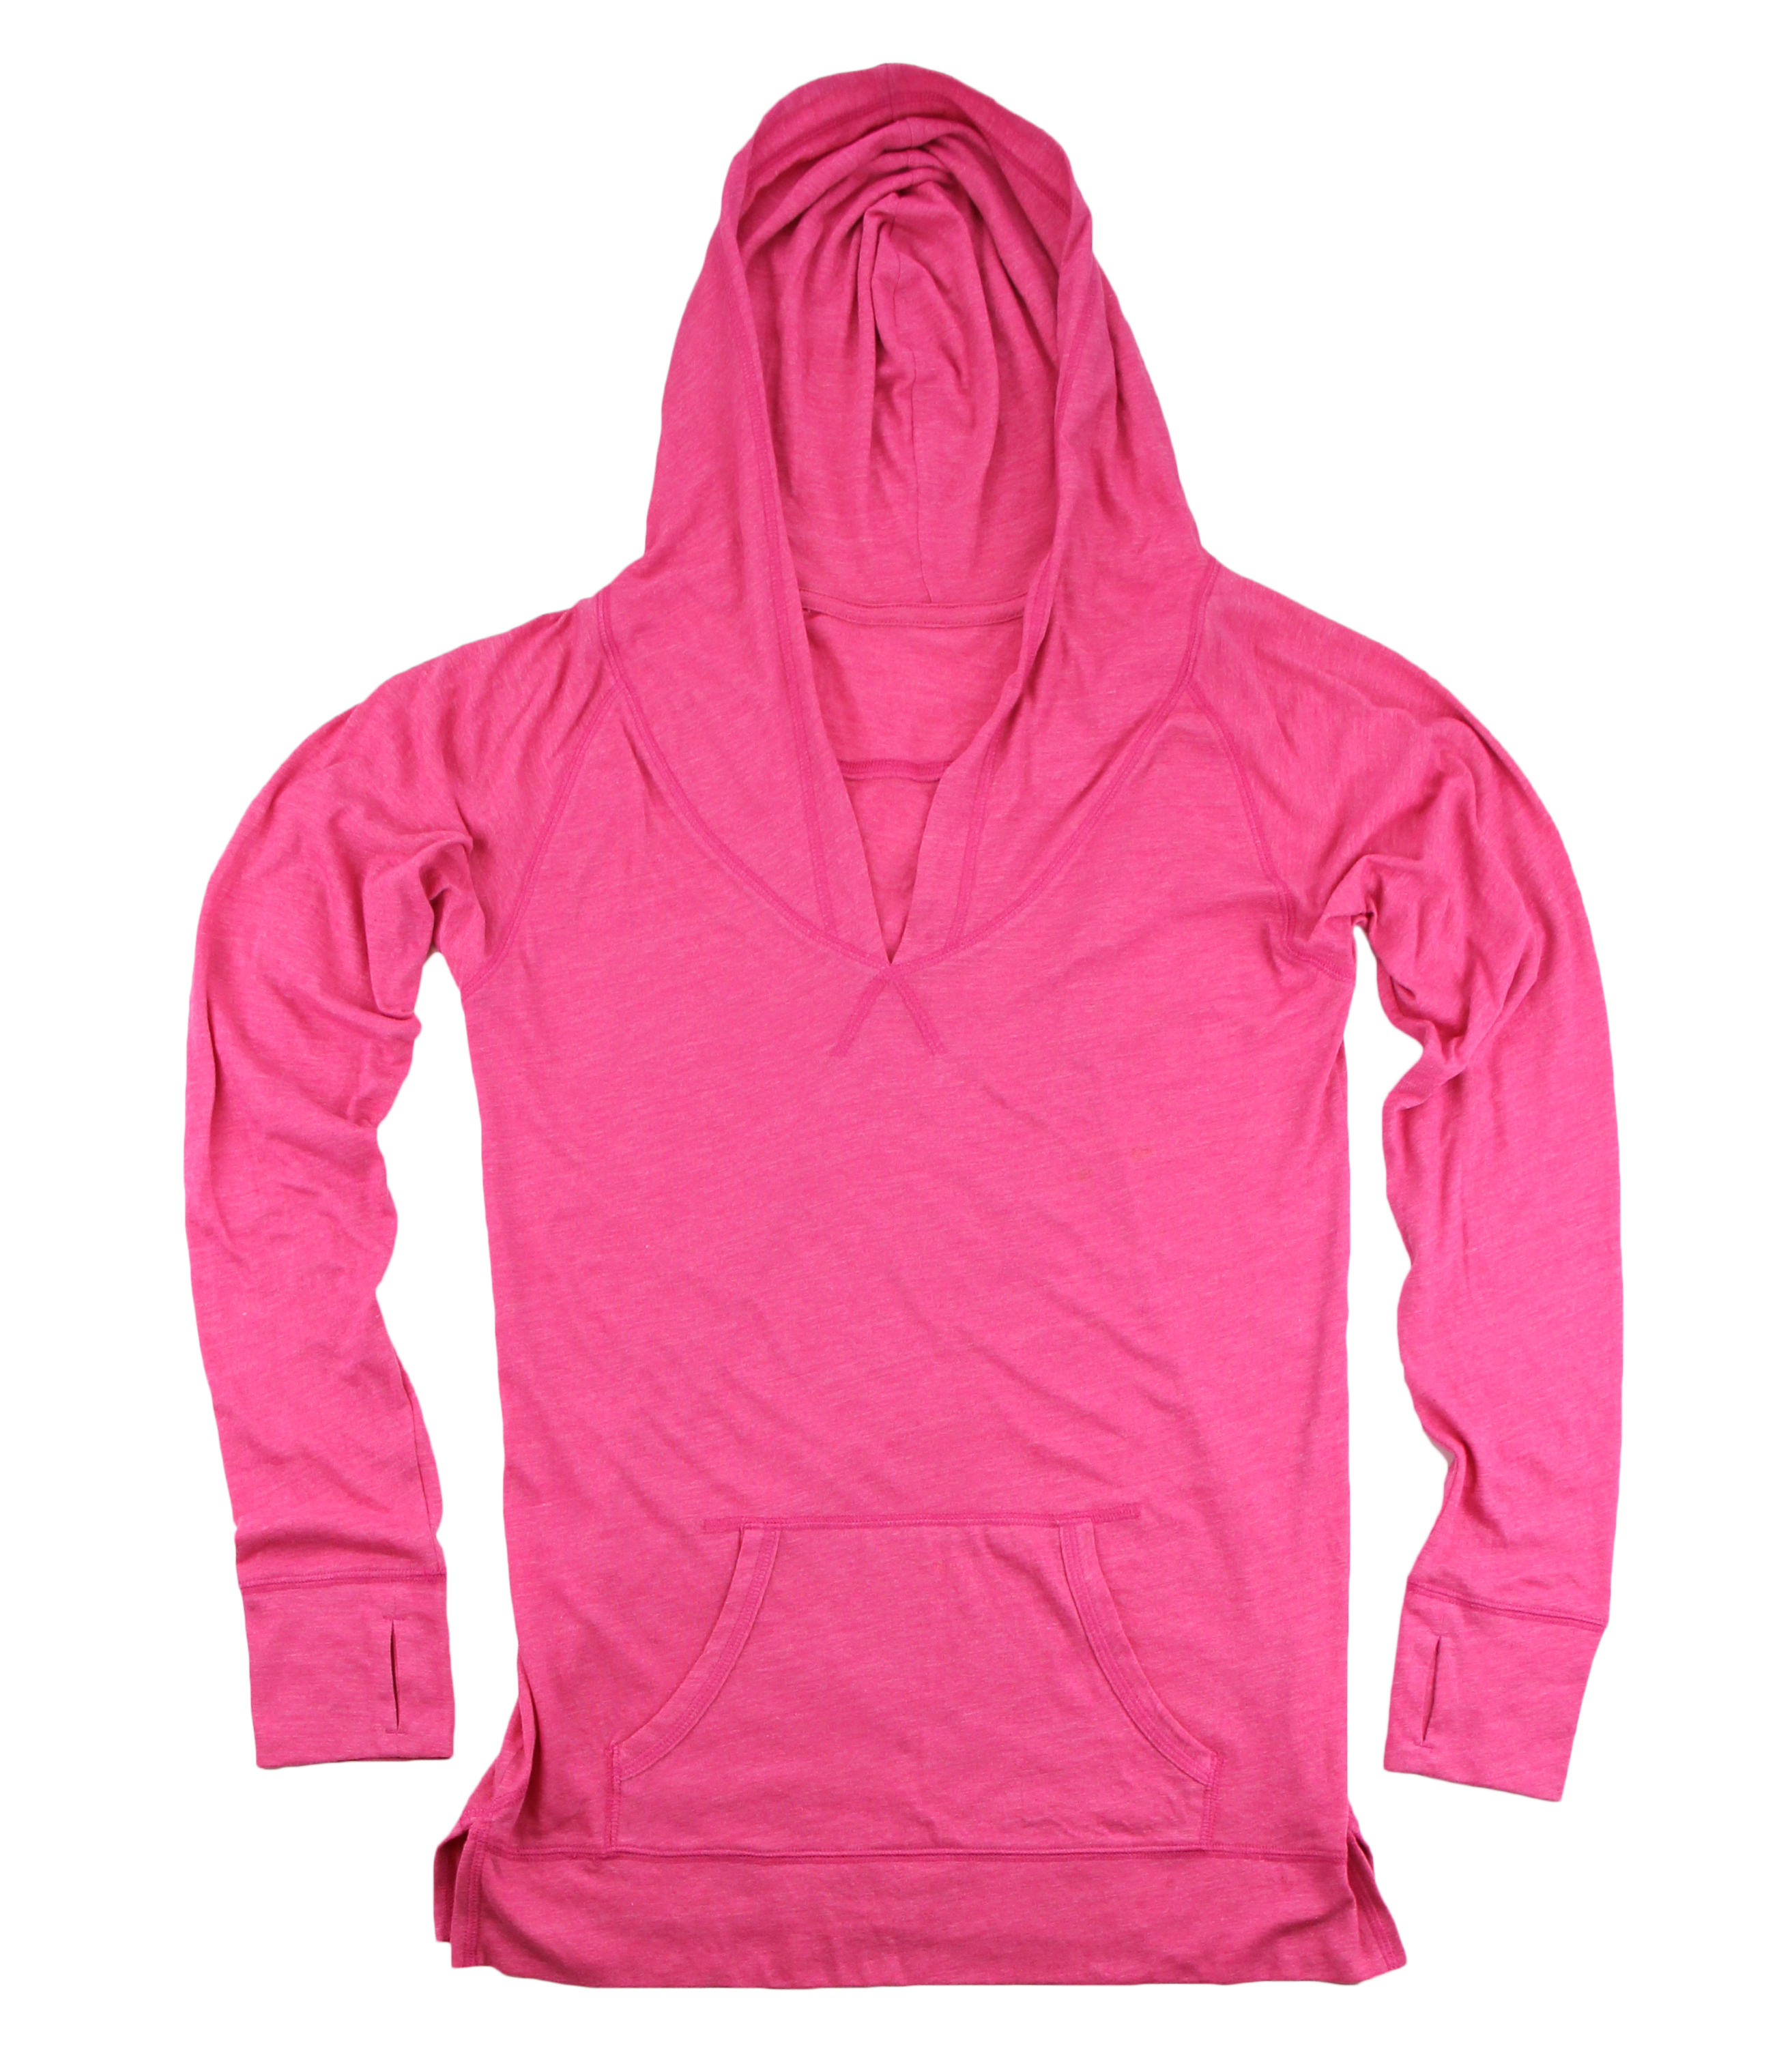 Workout hoodies for women